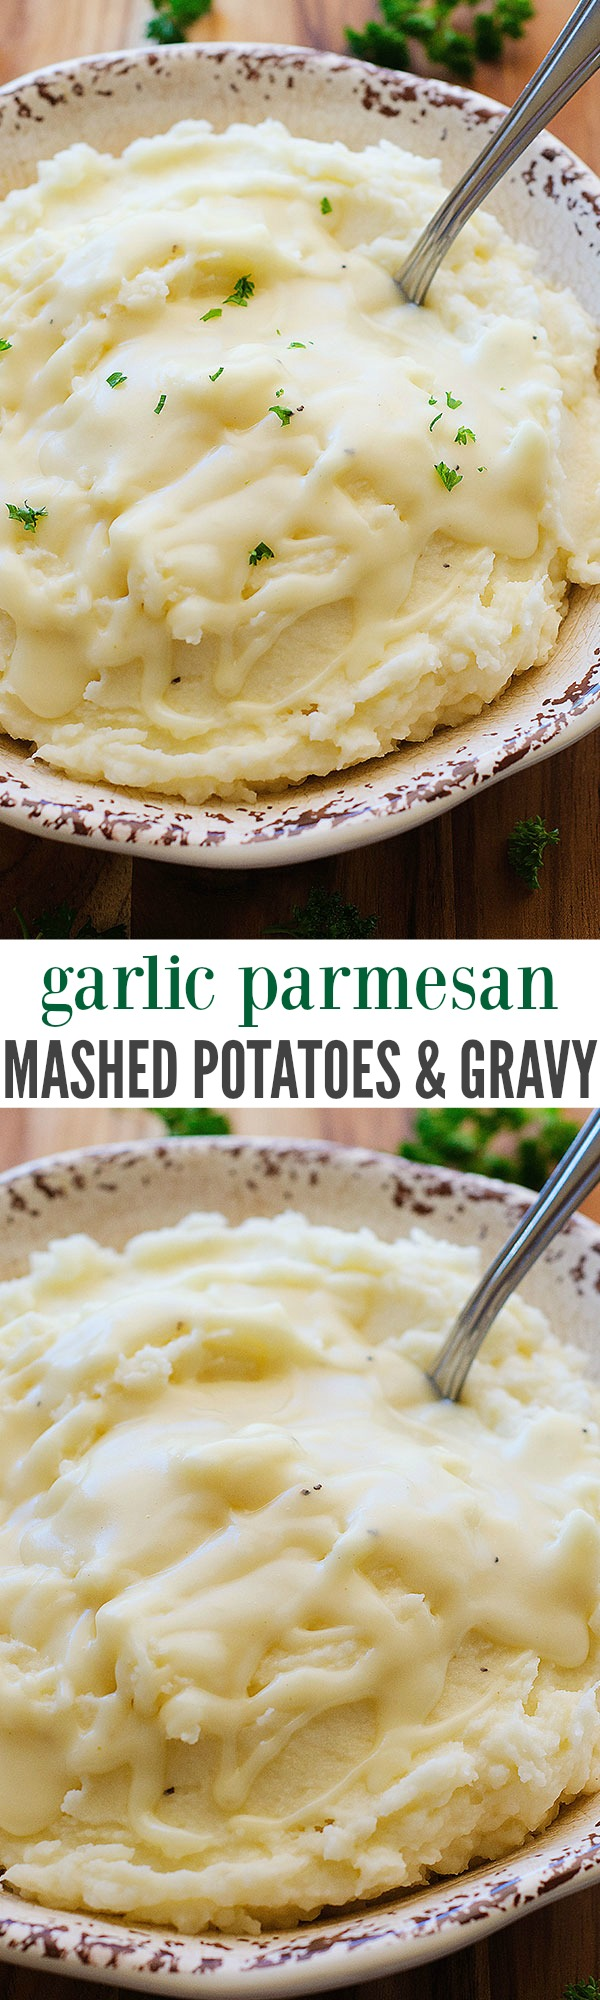 Garlic-Parmesan Mashed Potatoes Recipe — Dishmaps